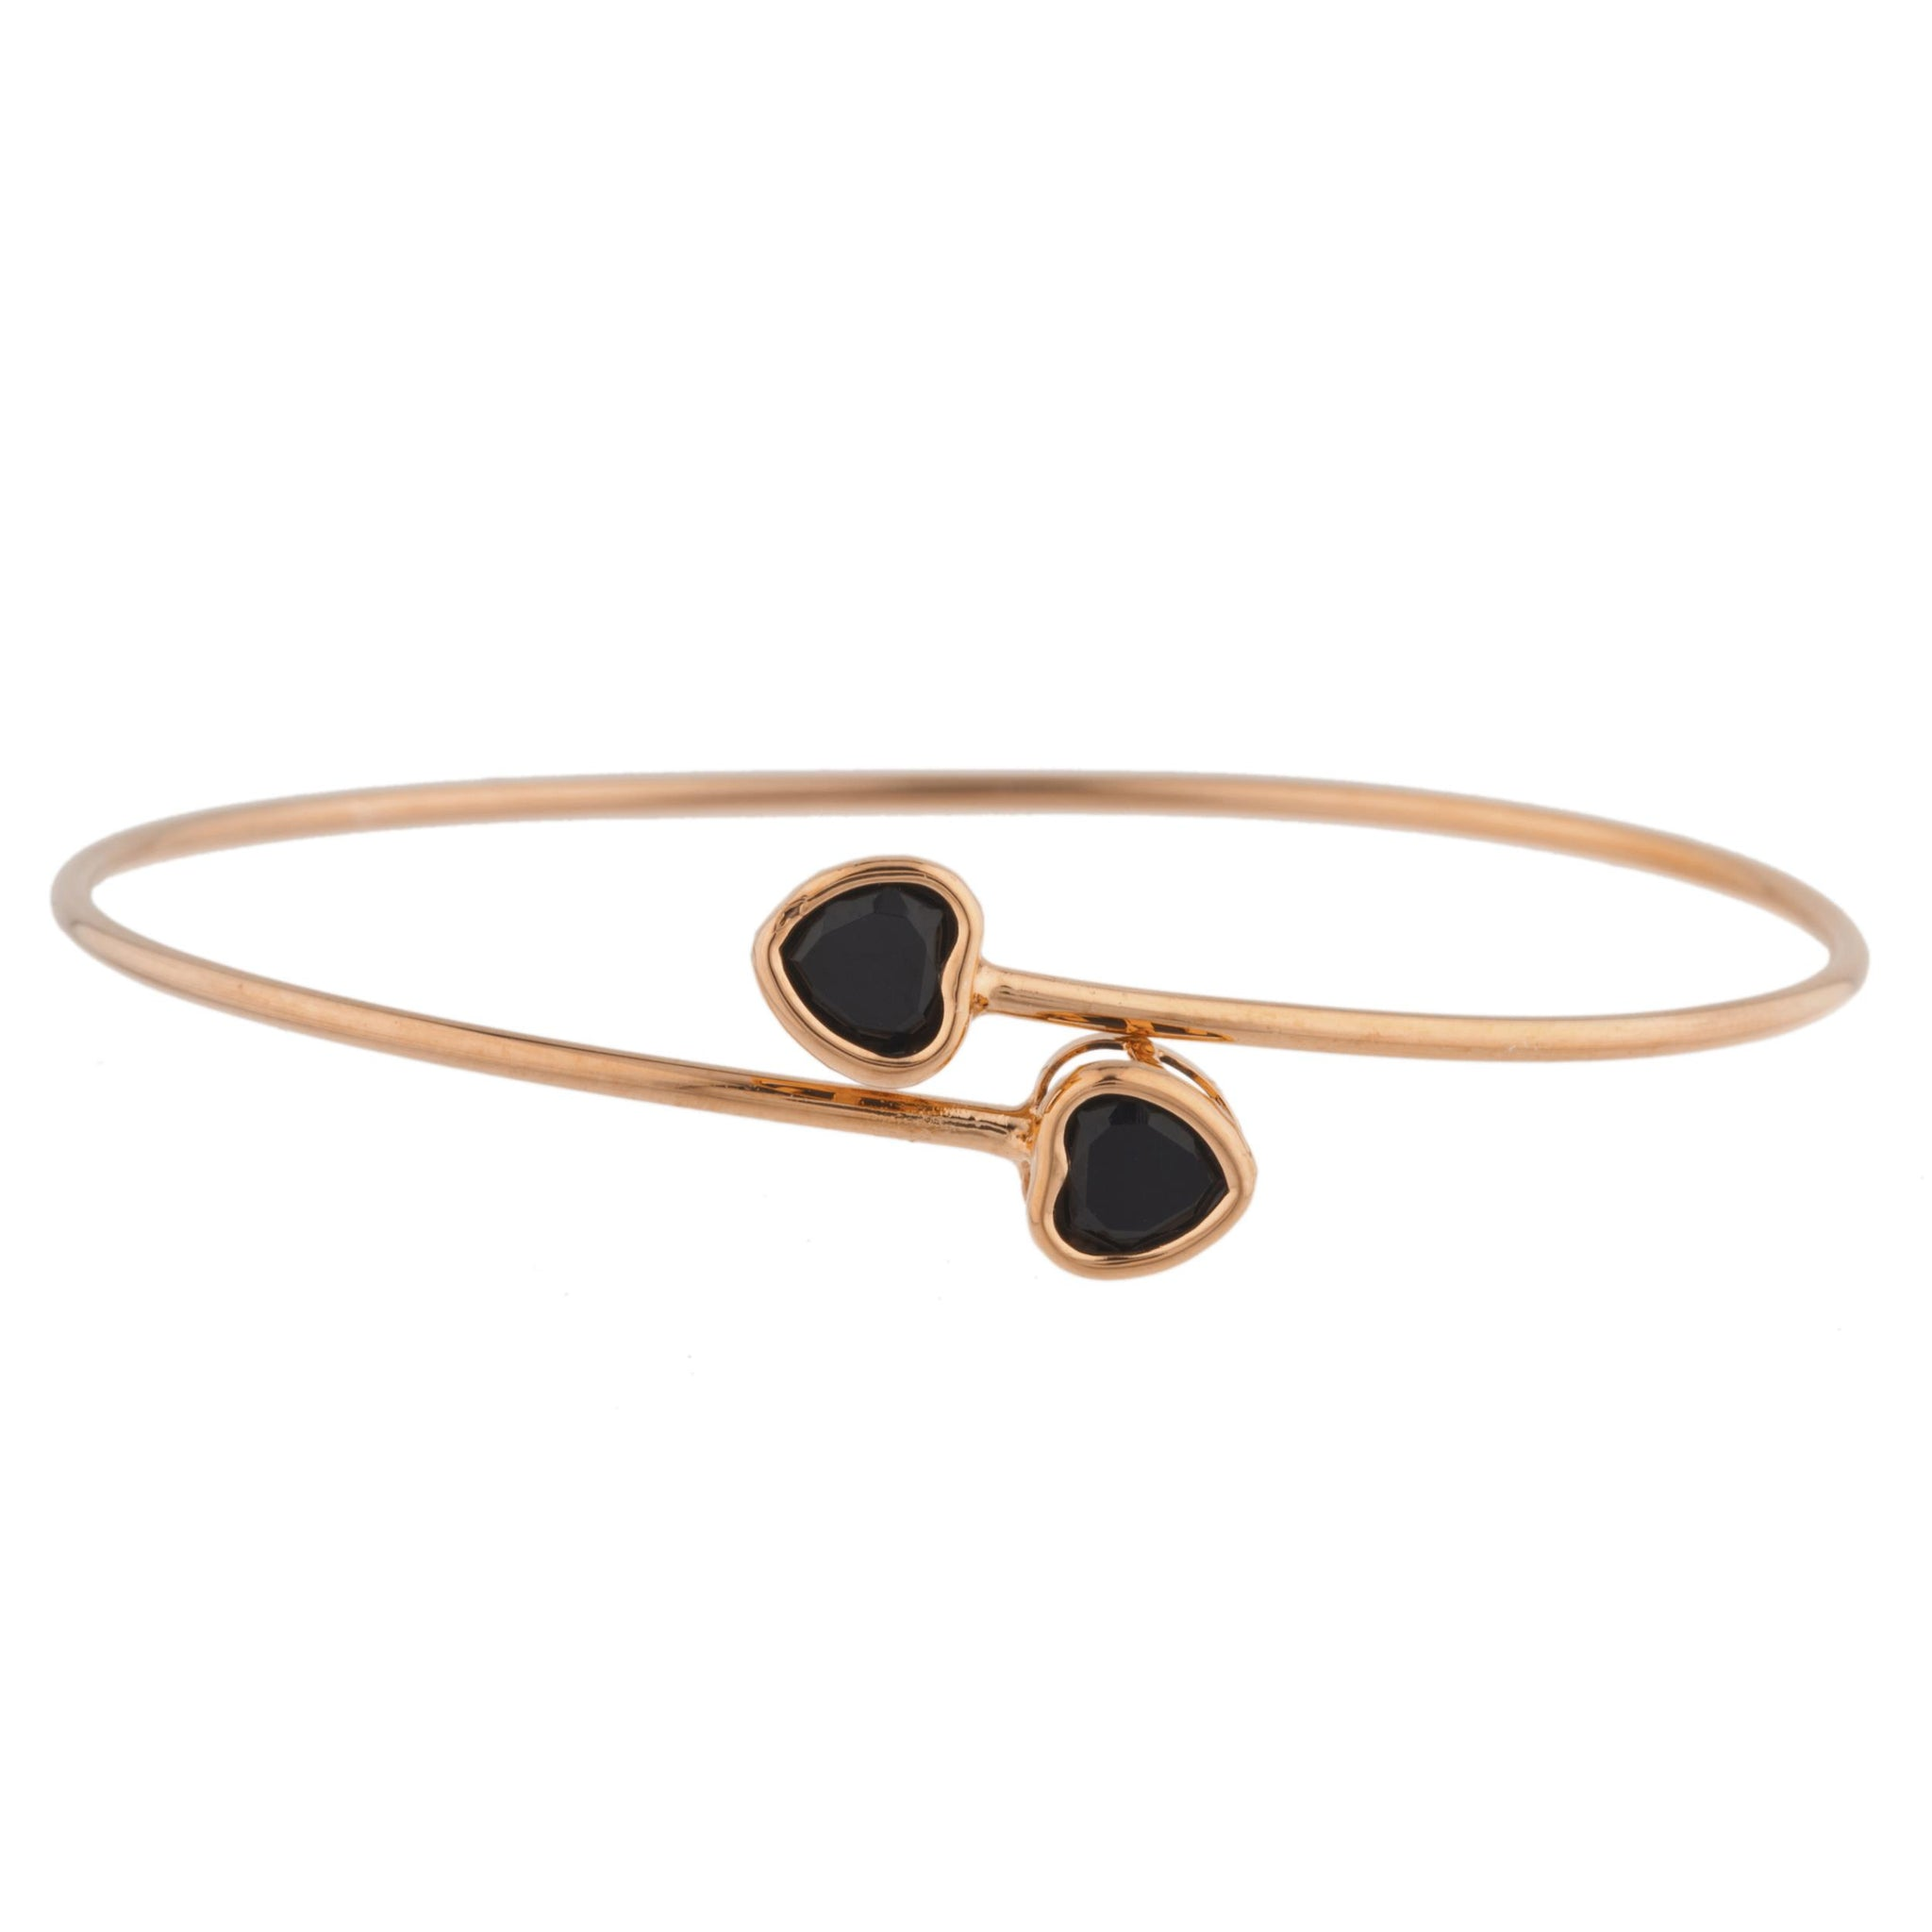 14Kt Rose Gold Plated Genuine Black Onyx Heart Bezel Bangle Bracelet